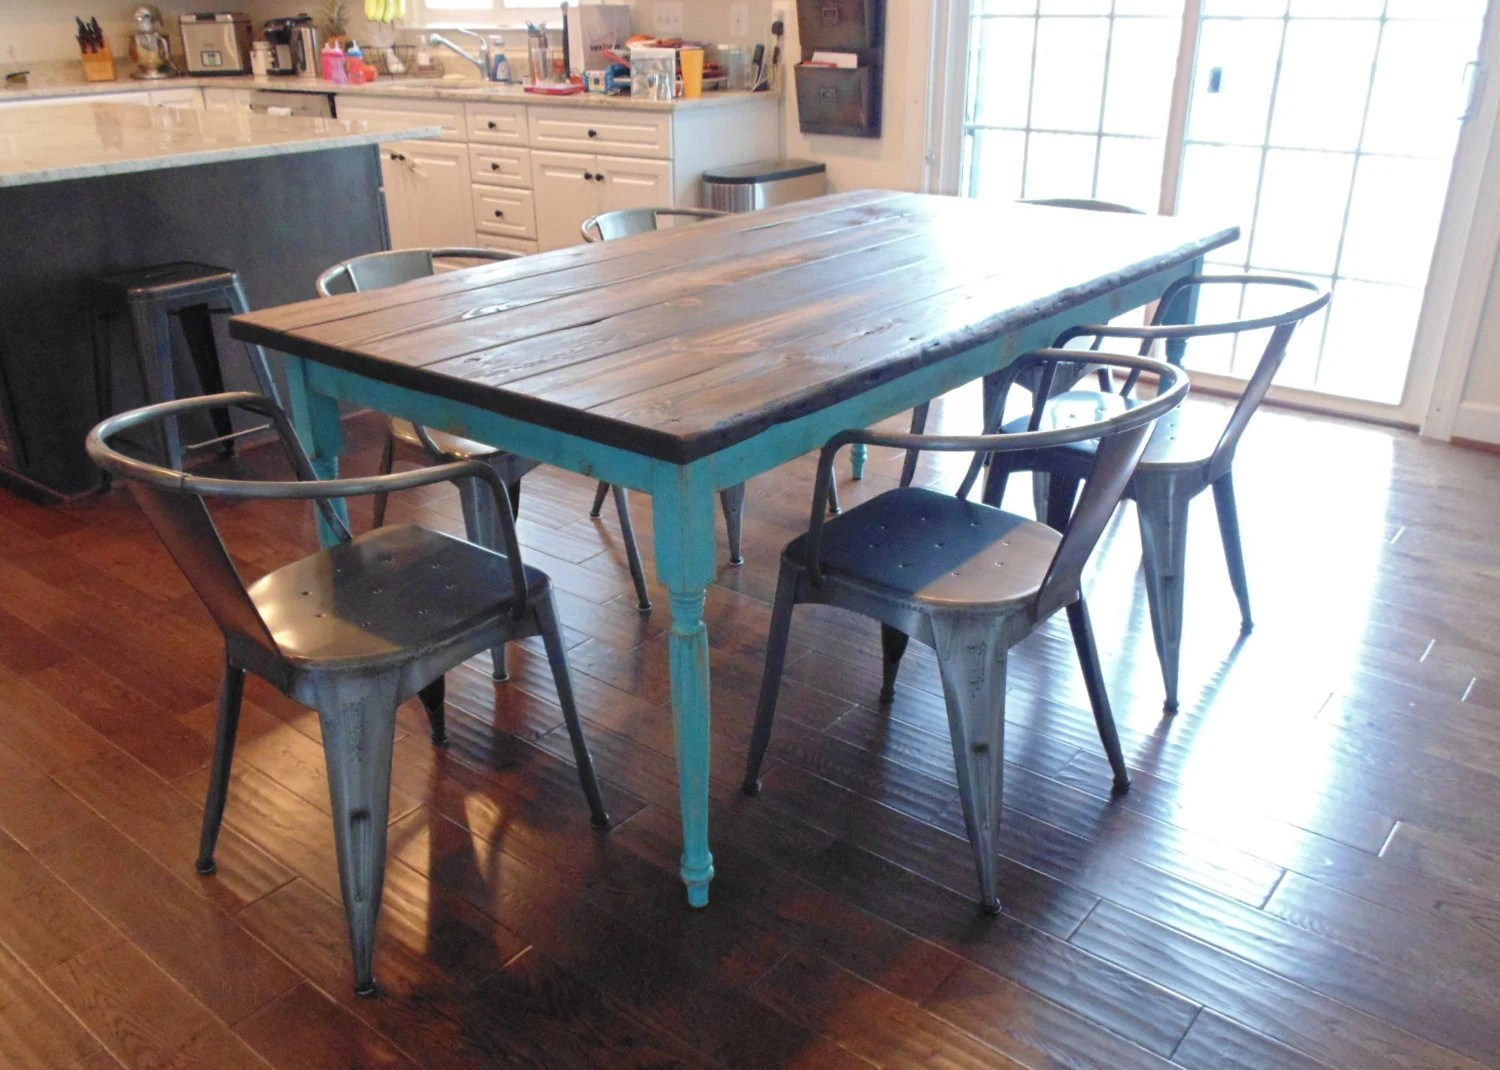 Circle Round Farmhouse Dining Table Dining Table Ready In 2 Weeks Farmhouse Table French